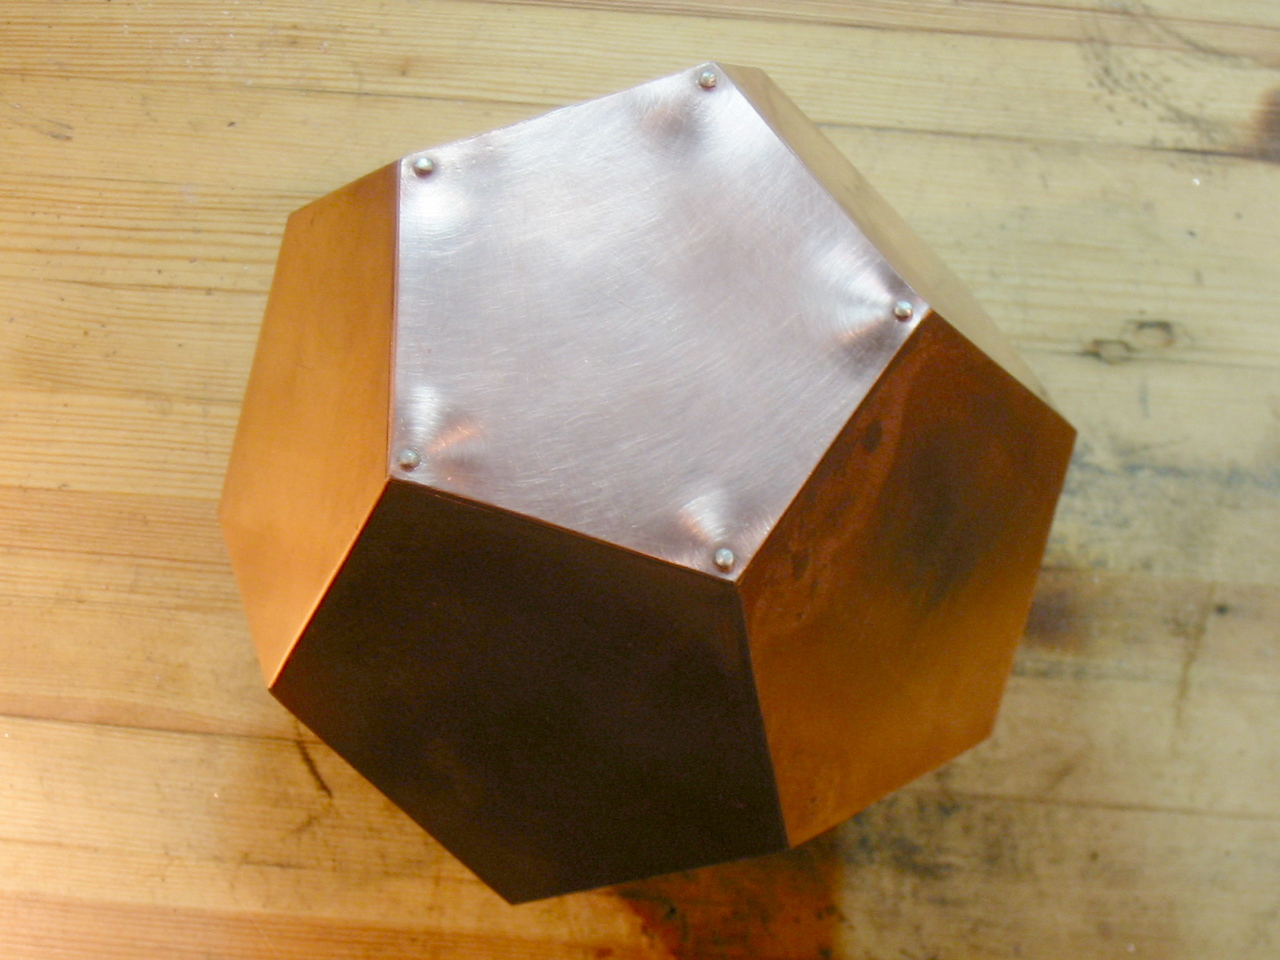 Pentagon dodecahedron, Fuondation-stone for the Waldorf school in Ringerike